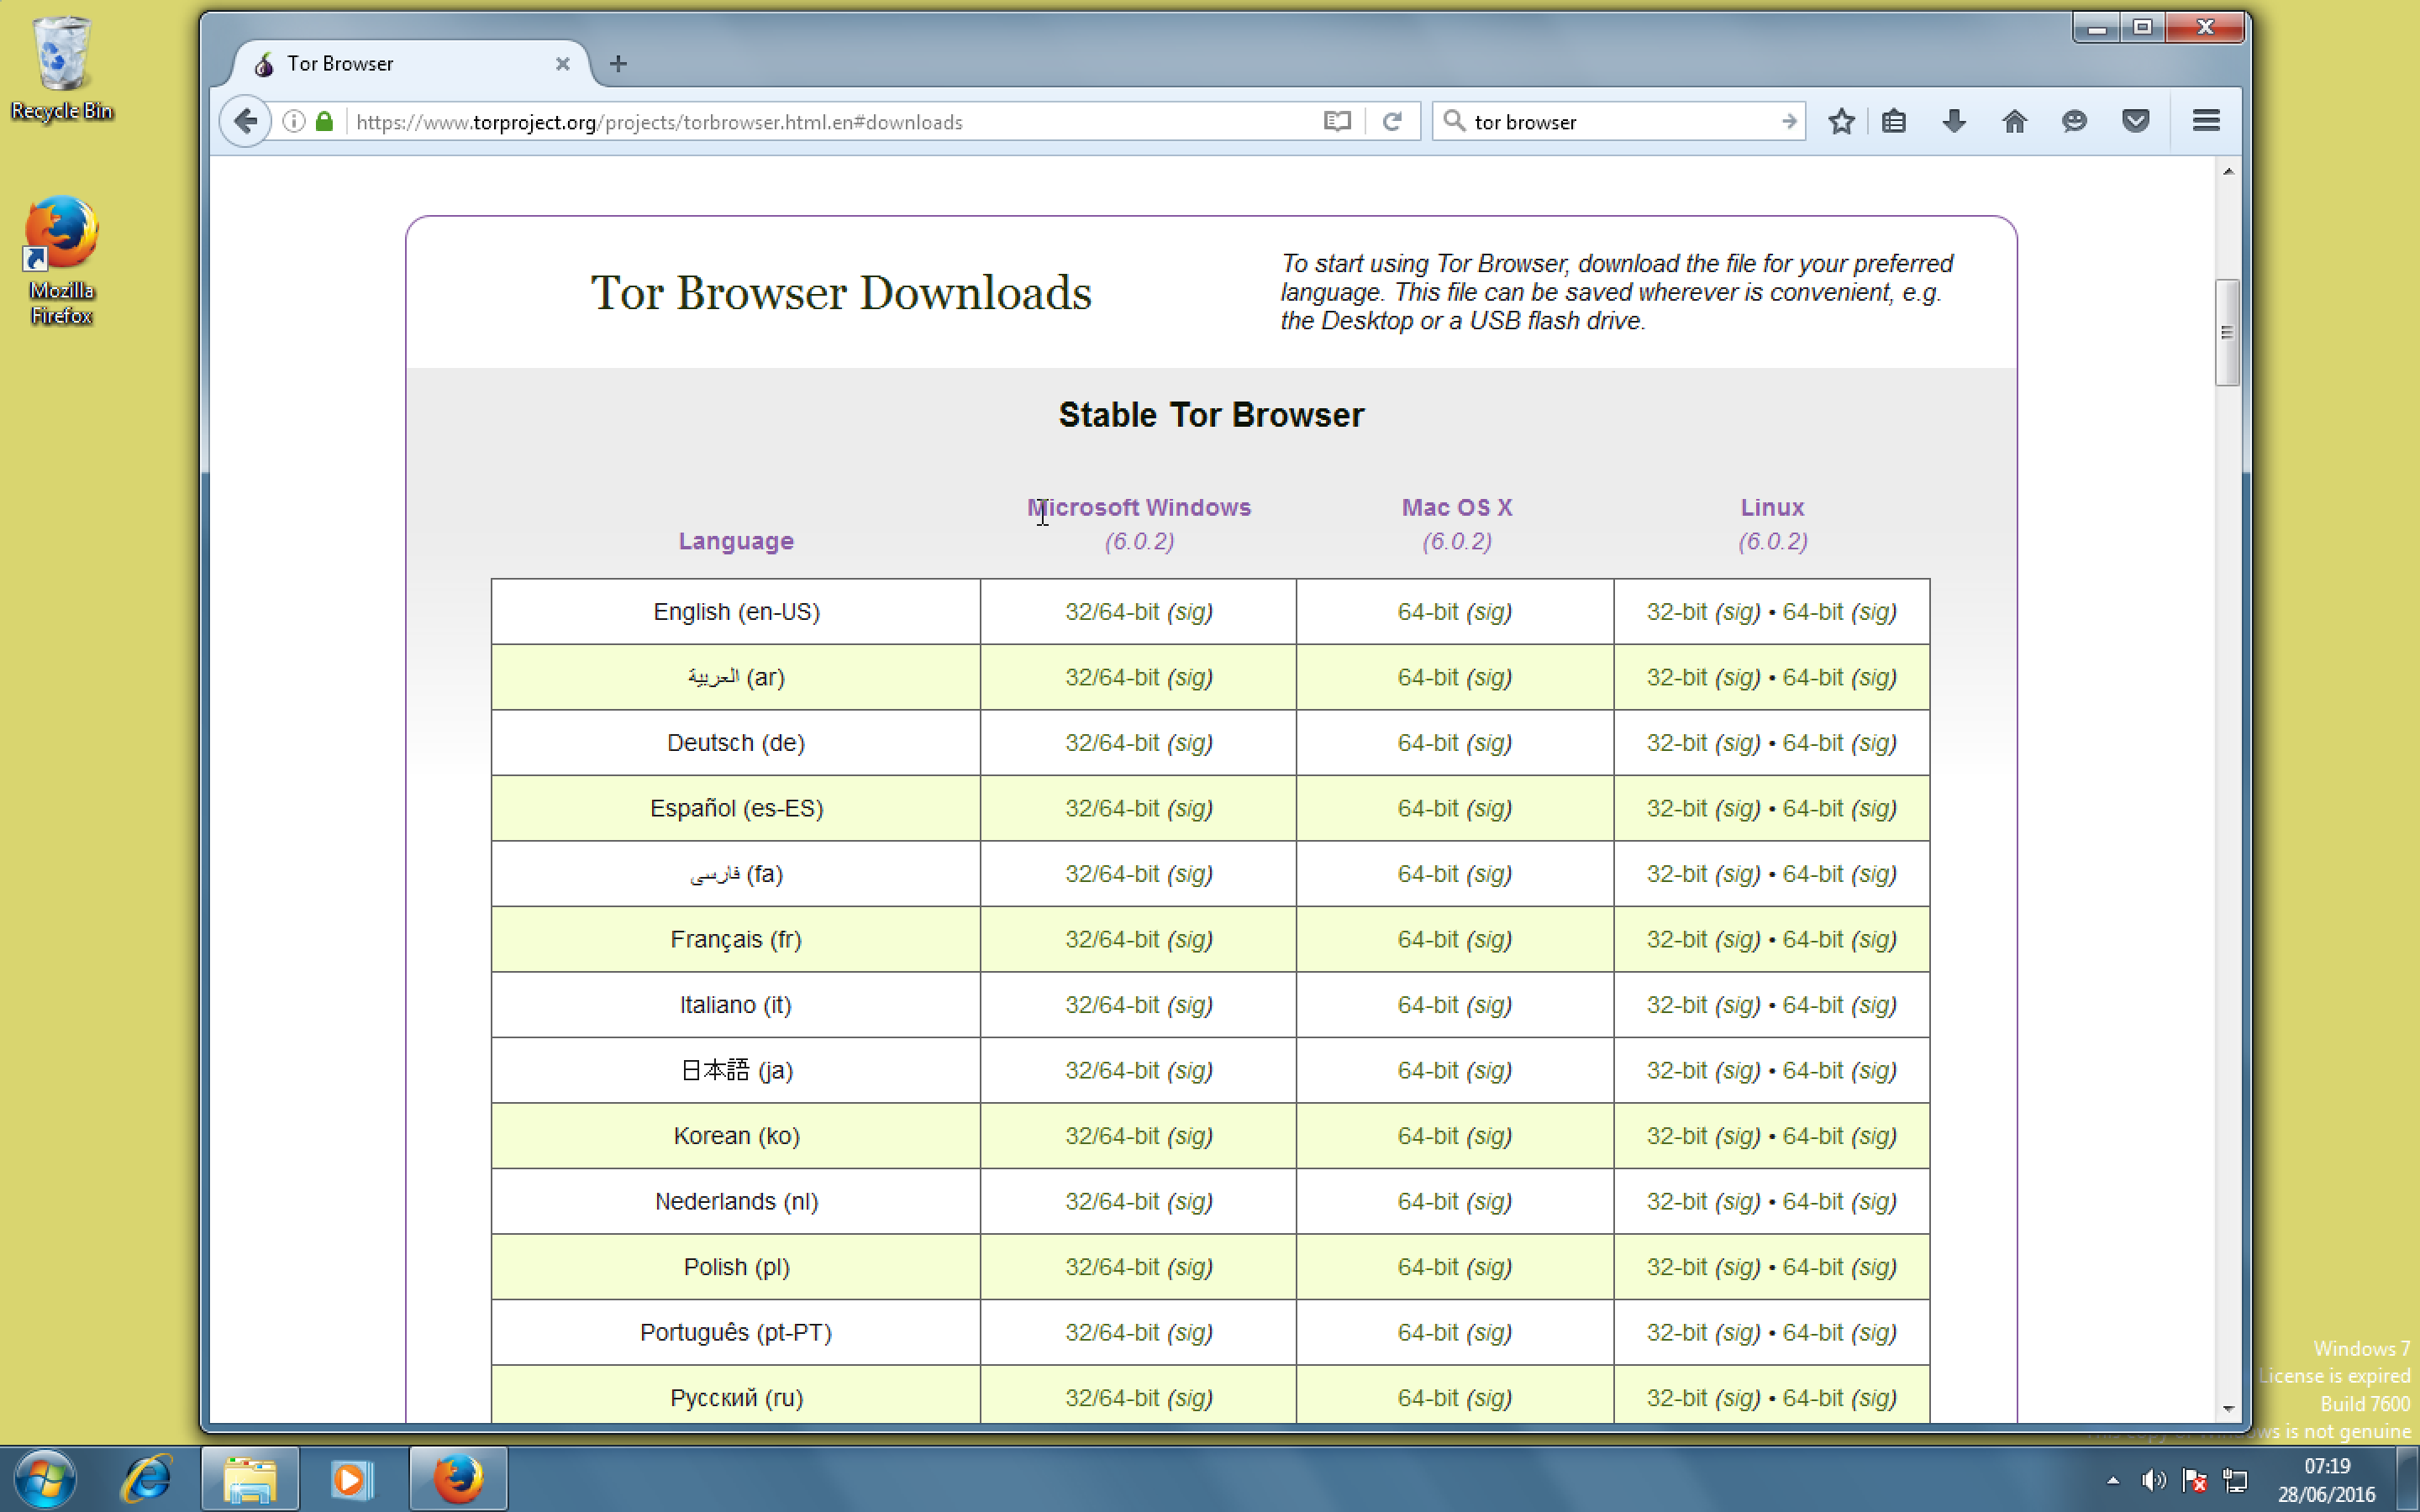 Downloading Tor Browser